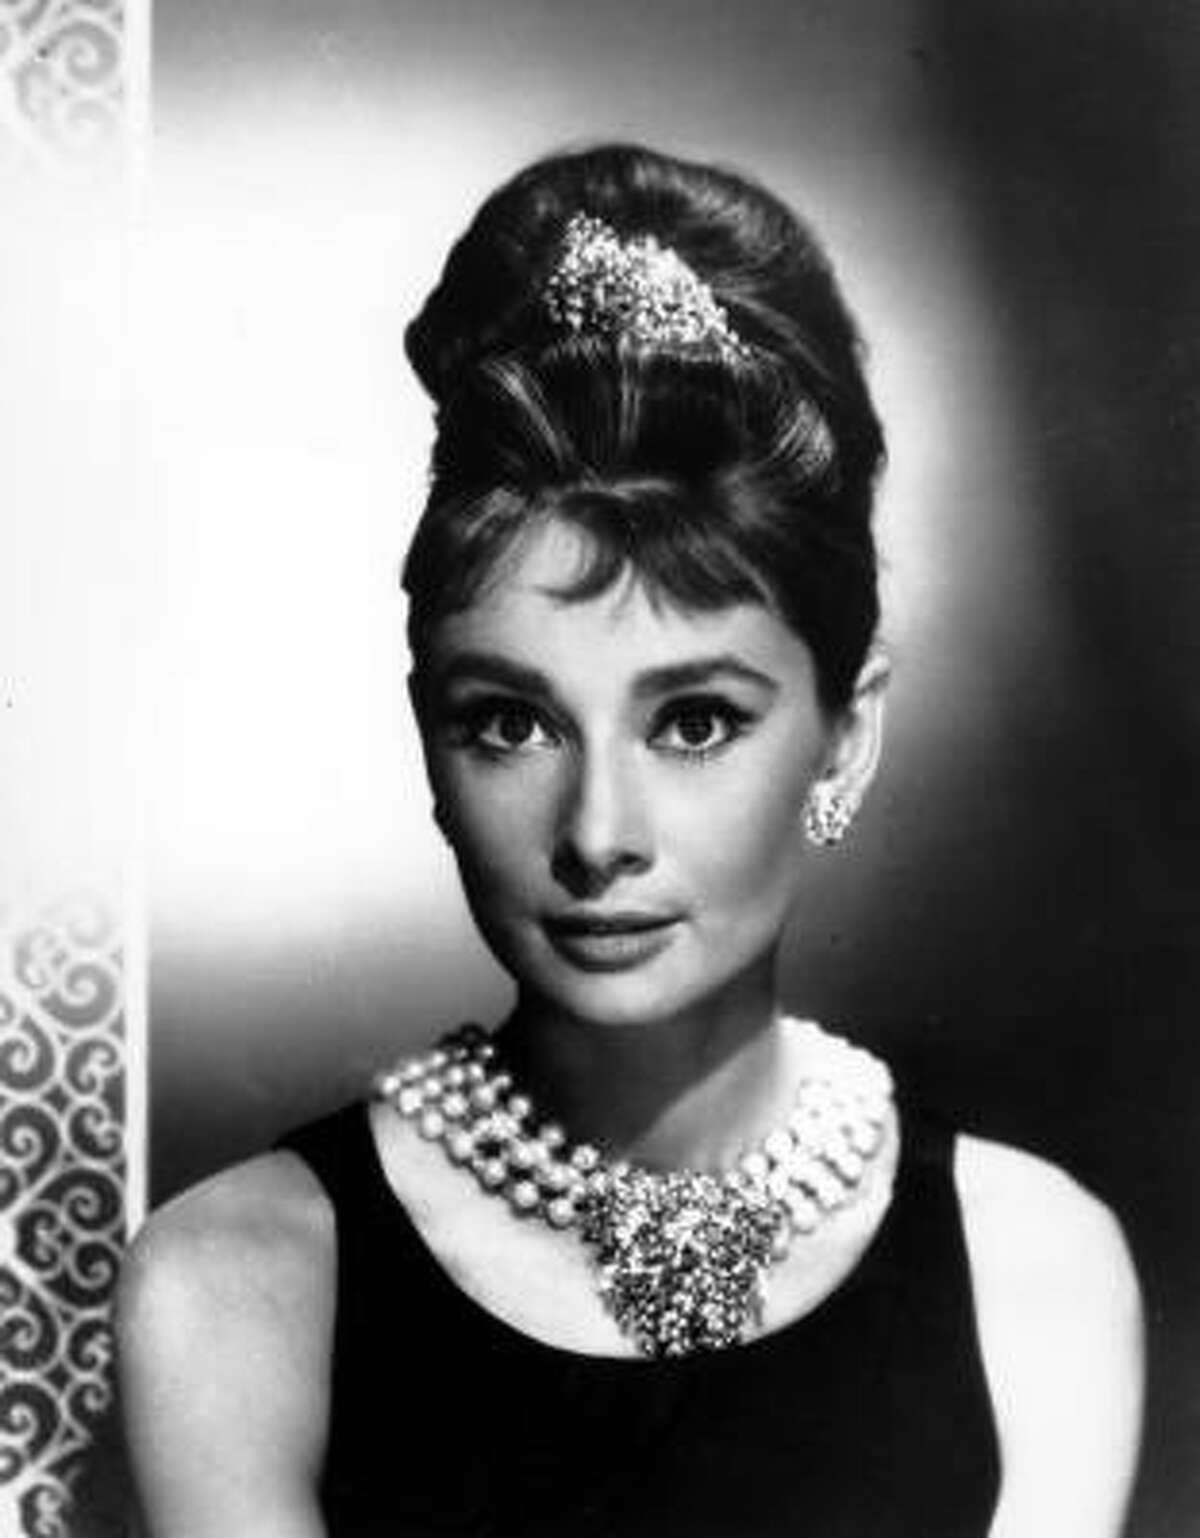 Holly Golightly was writer Truman Capote's creation. But in the 1961 film, Audrey Hepburn turned her into an icon in Breakfast at Tiffany's.